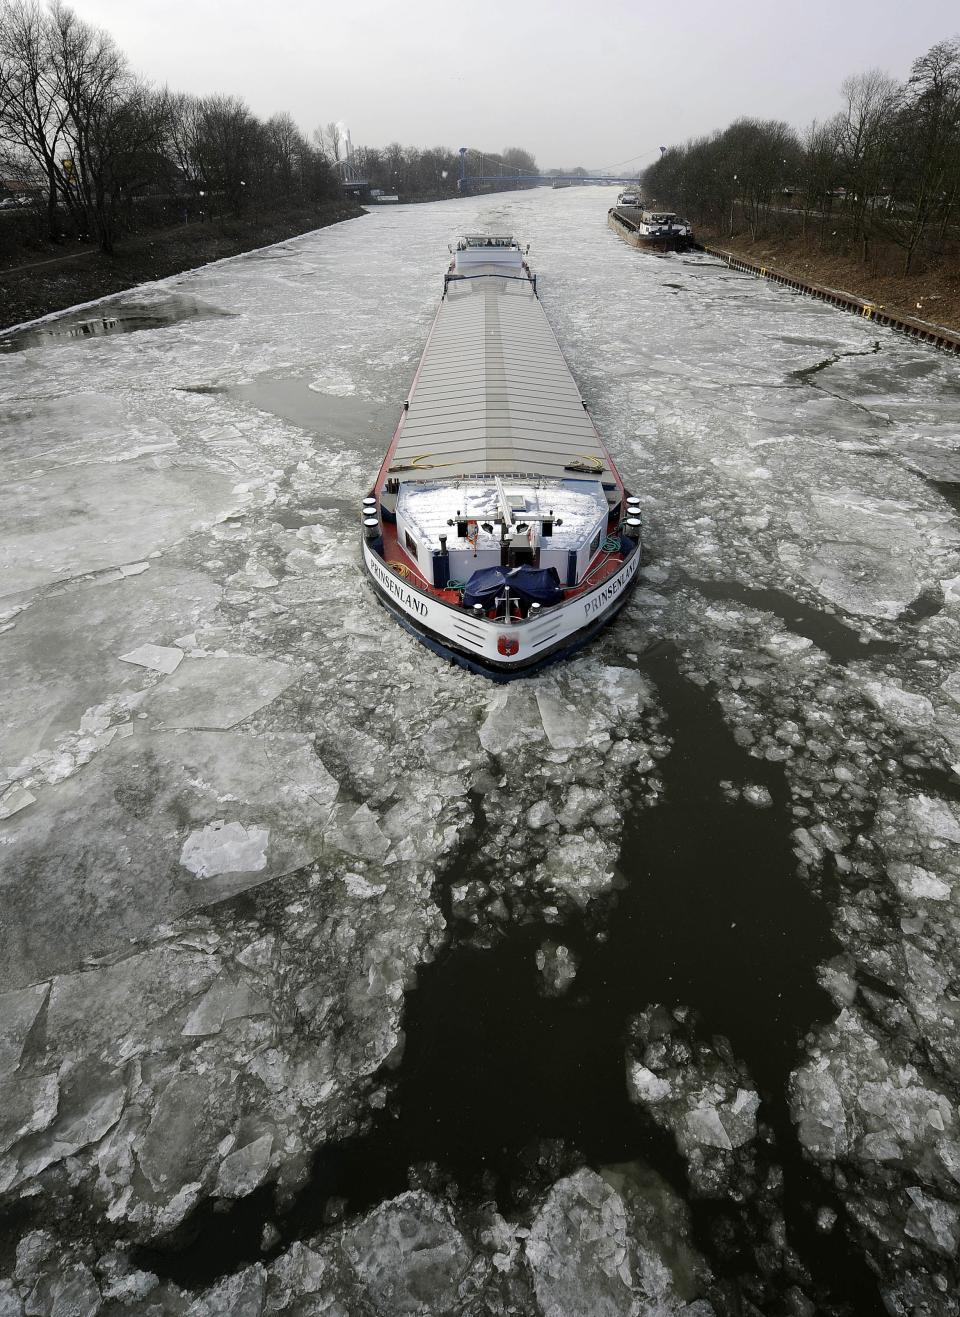 A transport ship makes its way through the ice on the Rhine-Herne canal in Gelsenkirchen, Germany, Tuesday, Feb. 7, 2012. Many canals and rivers in Germany are closed because of the ice. (AP Photo/Martin Meissnerr)